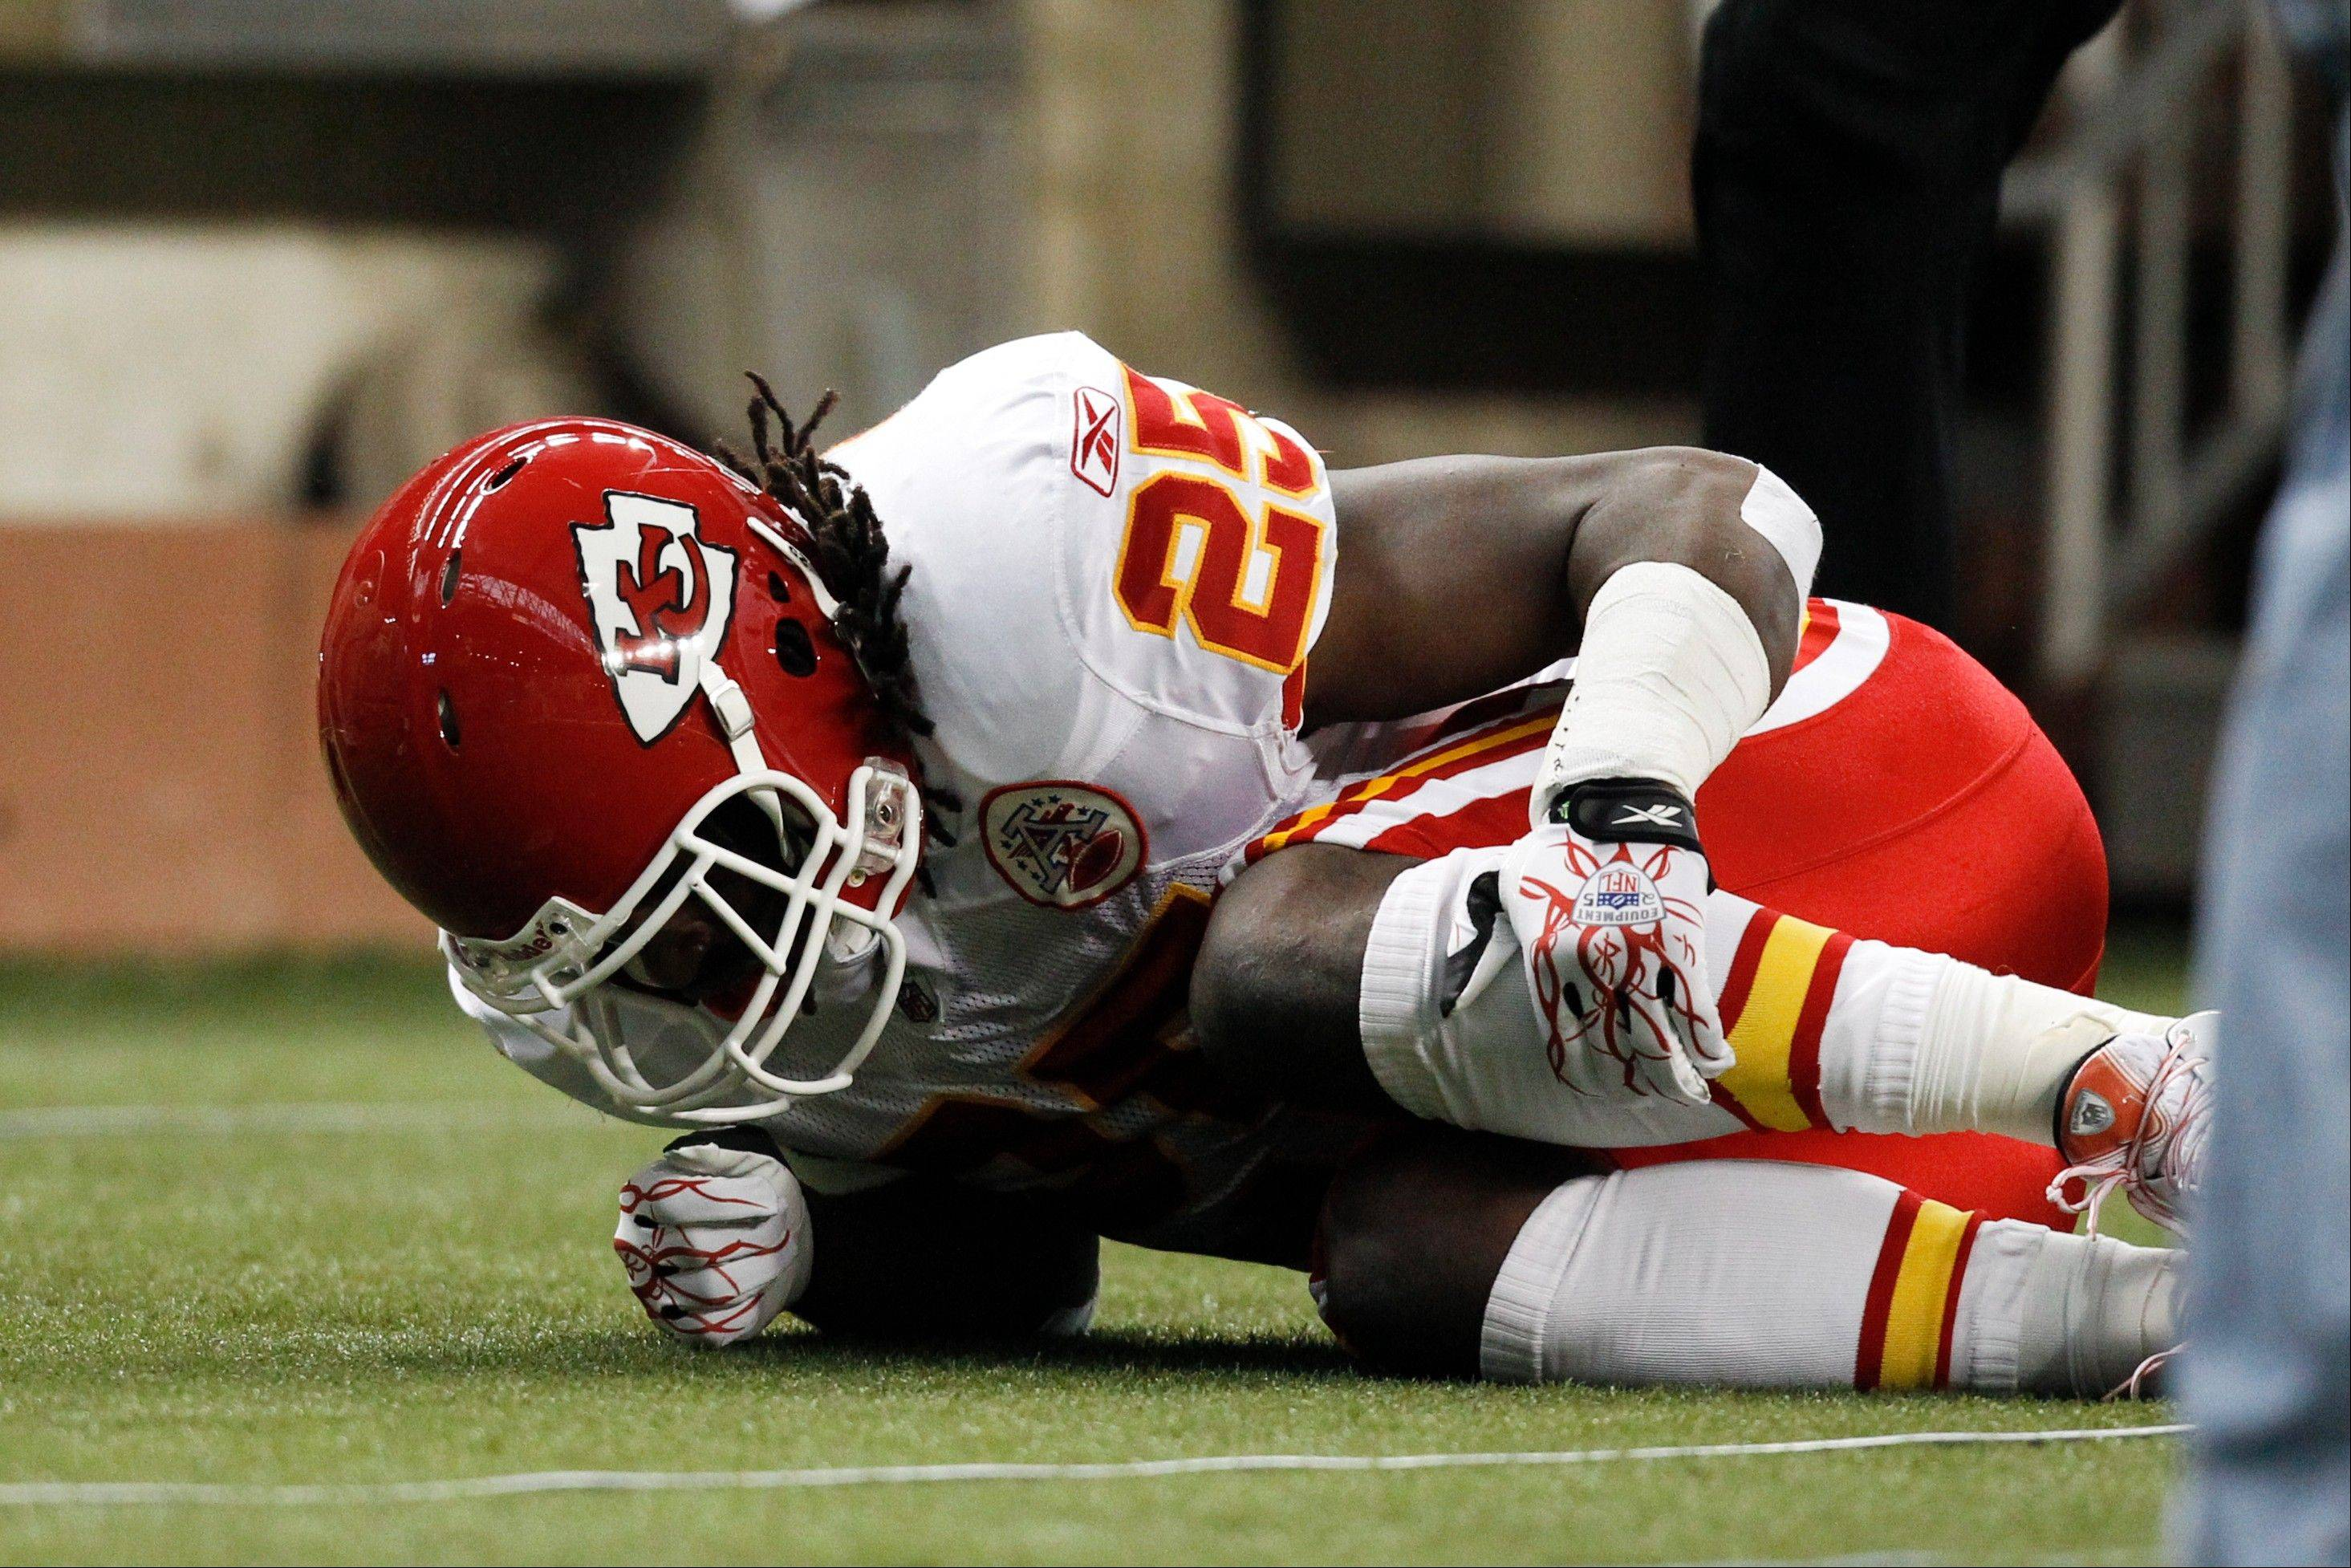 Kansas City Chiefs running back Jamaal Charles is out for the season after tearing the ACL in his left knee Sunday against the Lions.